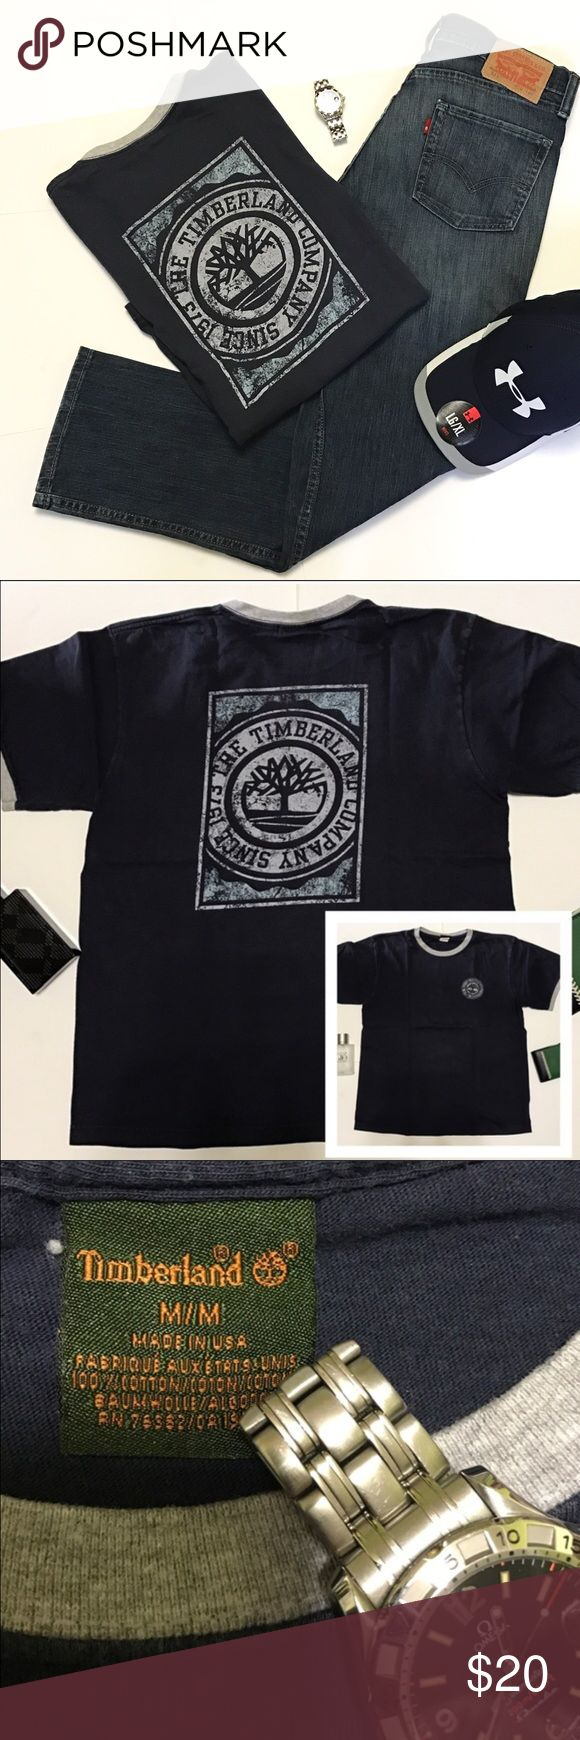 🌎Timber Graphic T-shirt This Timber Graphic T-shirt is made in USA. Good condition except normal sign of wear. Navy Blue color. No Trade. Open to offer. Timberland Shirts